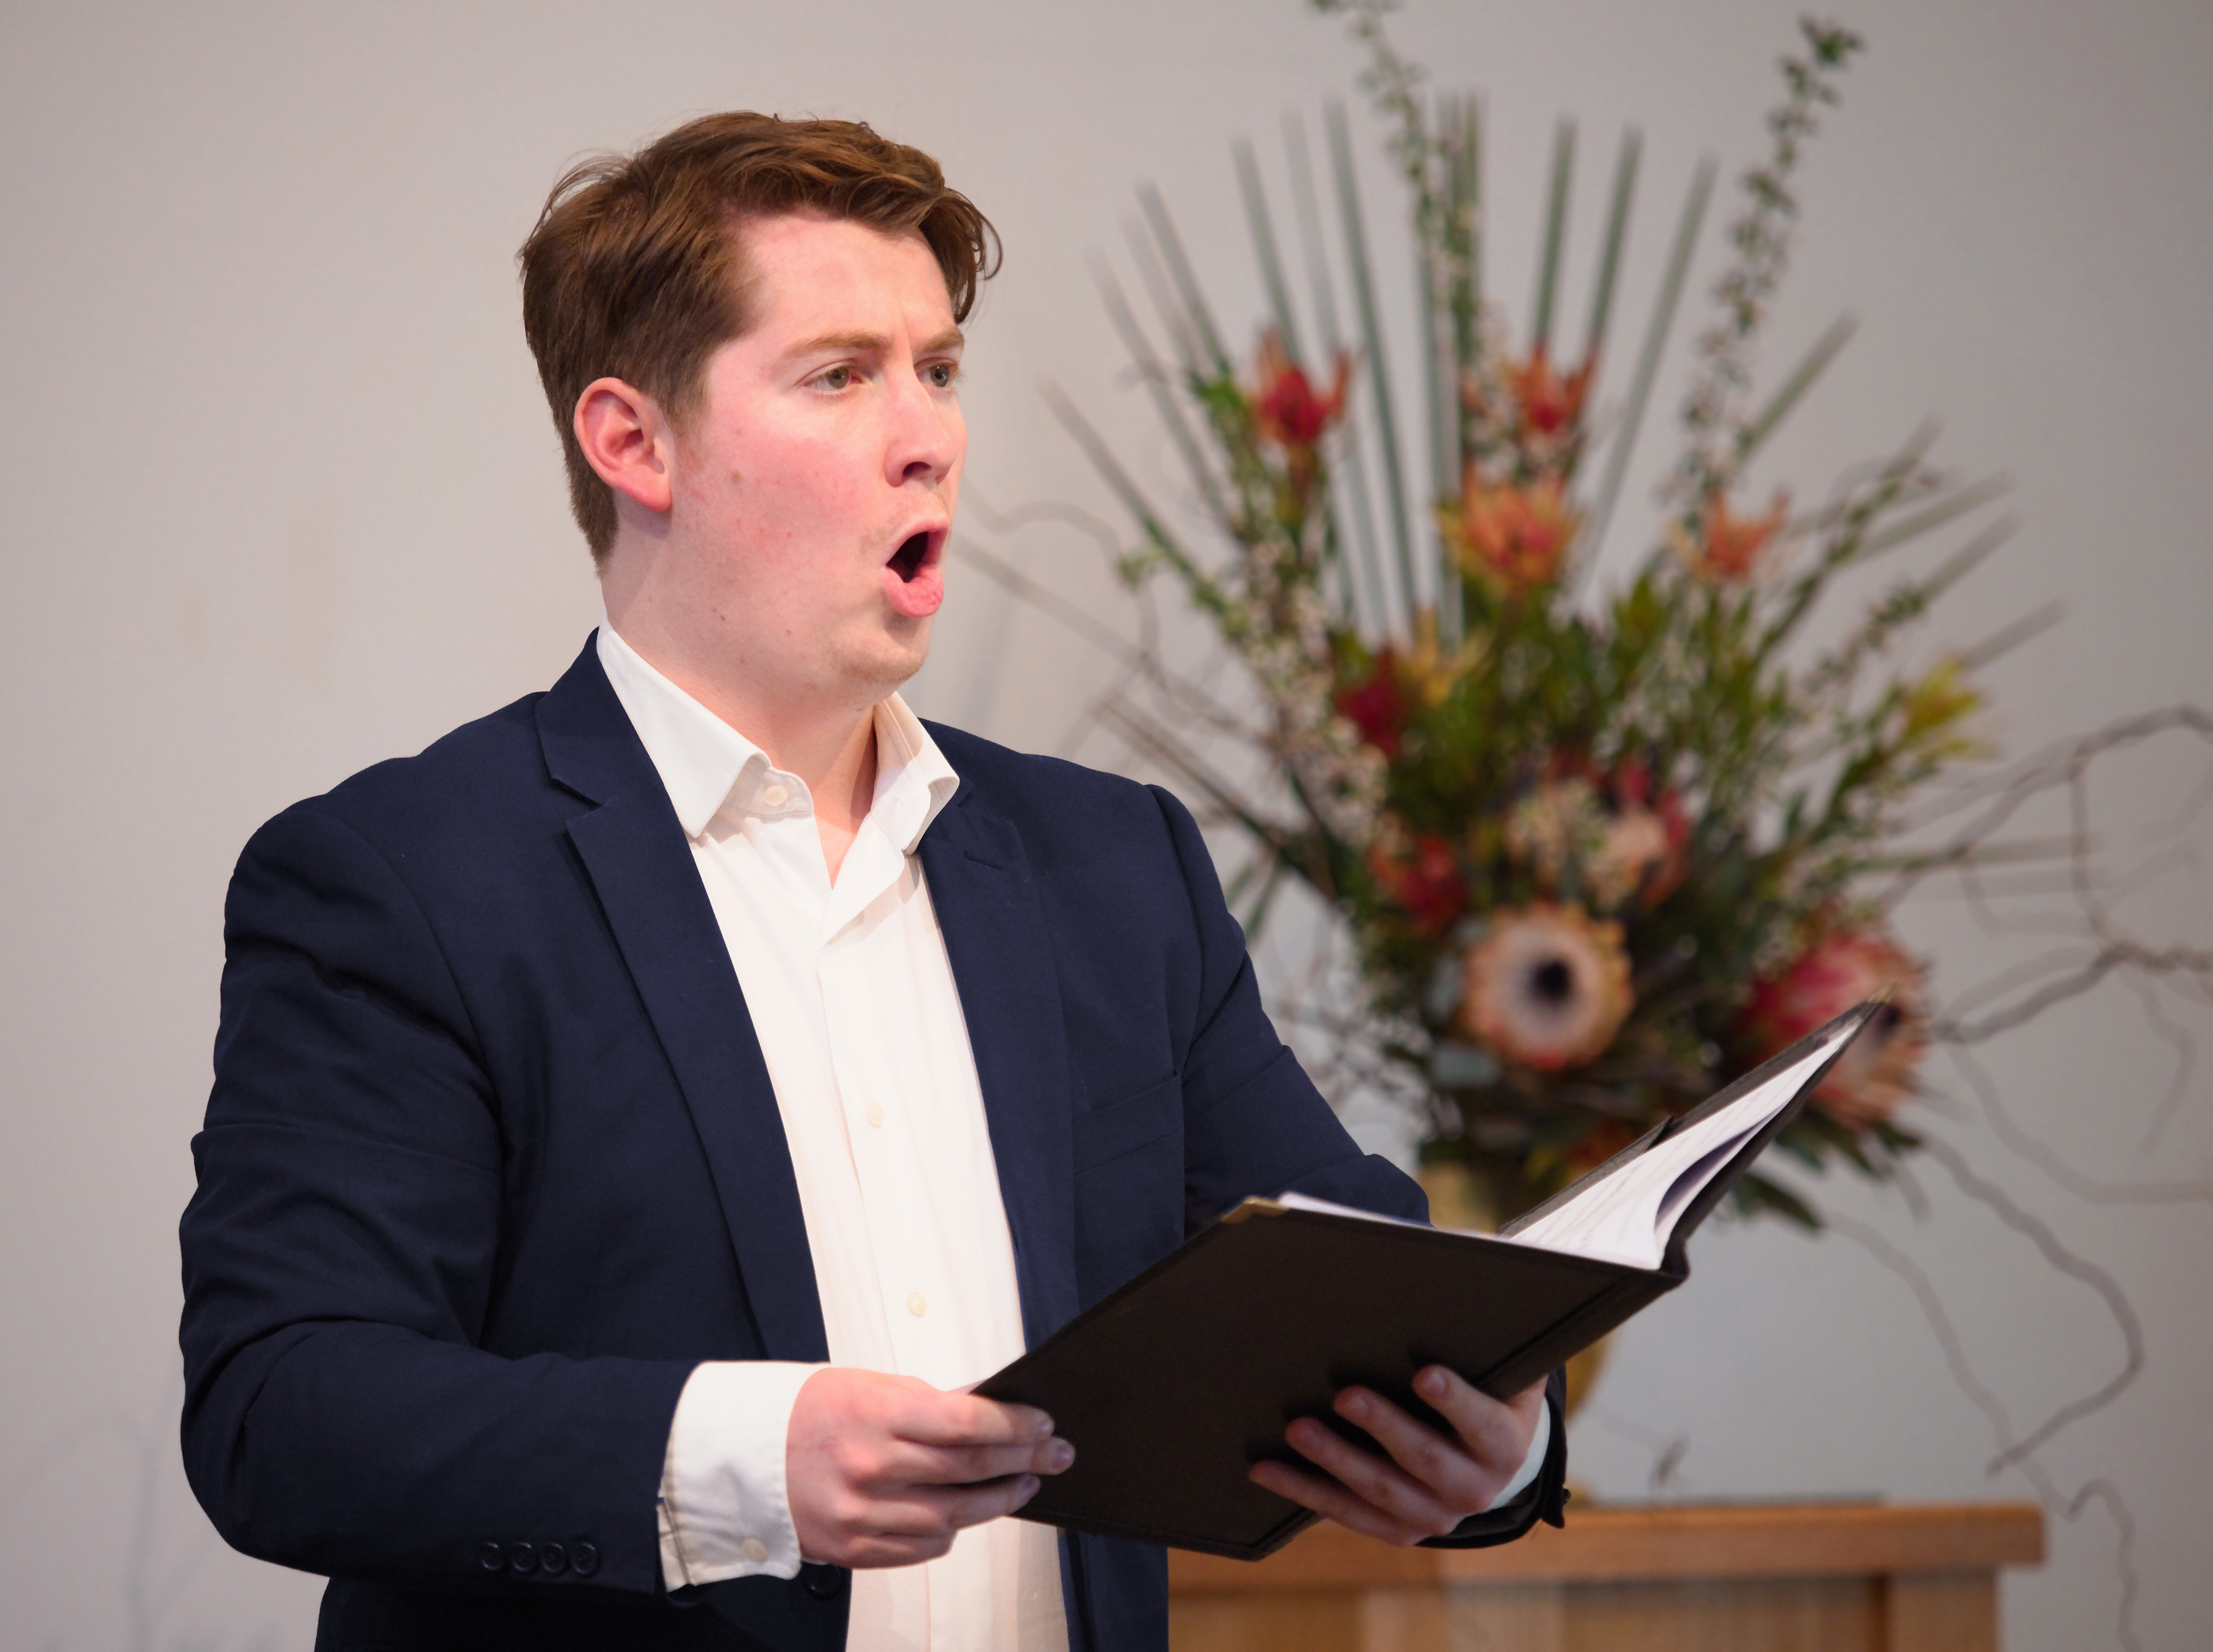 WGE Classical Vocal James Emerson Performs